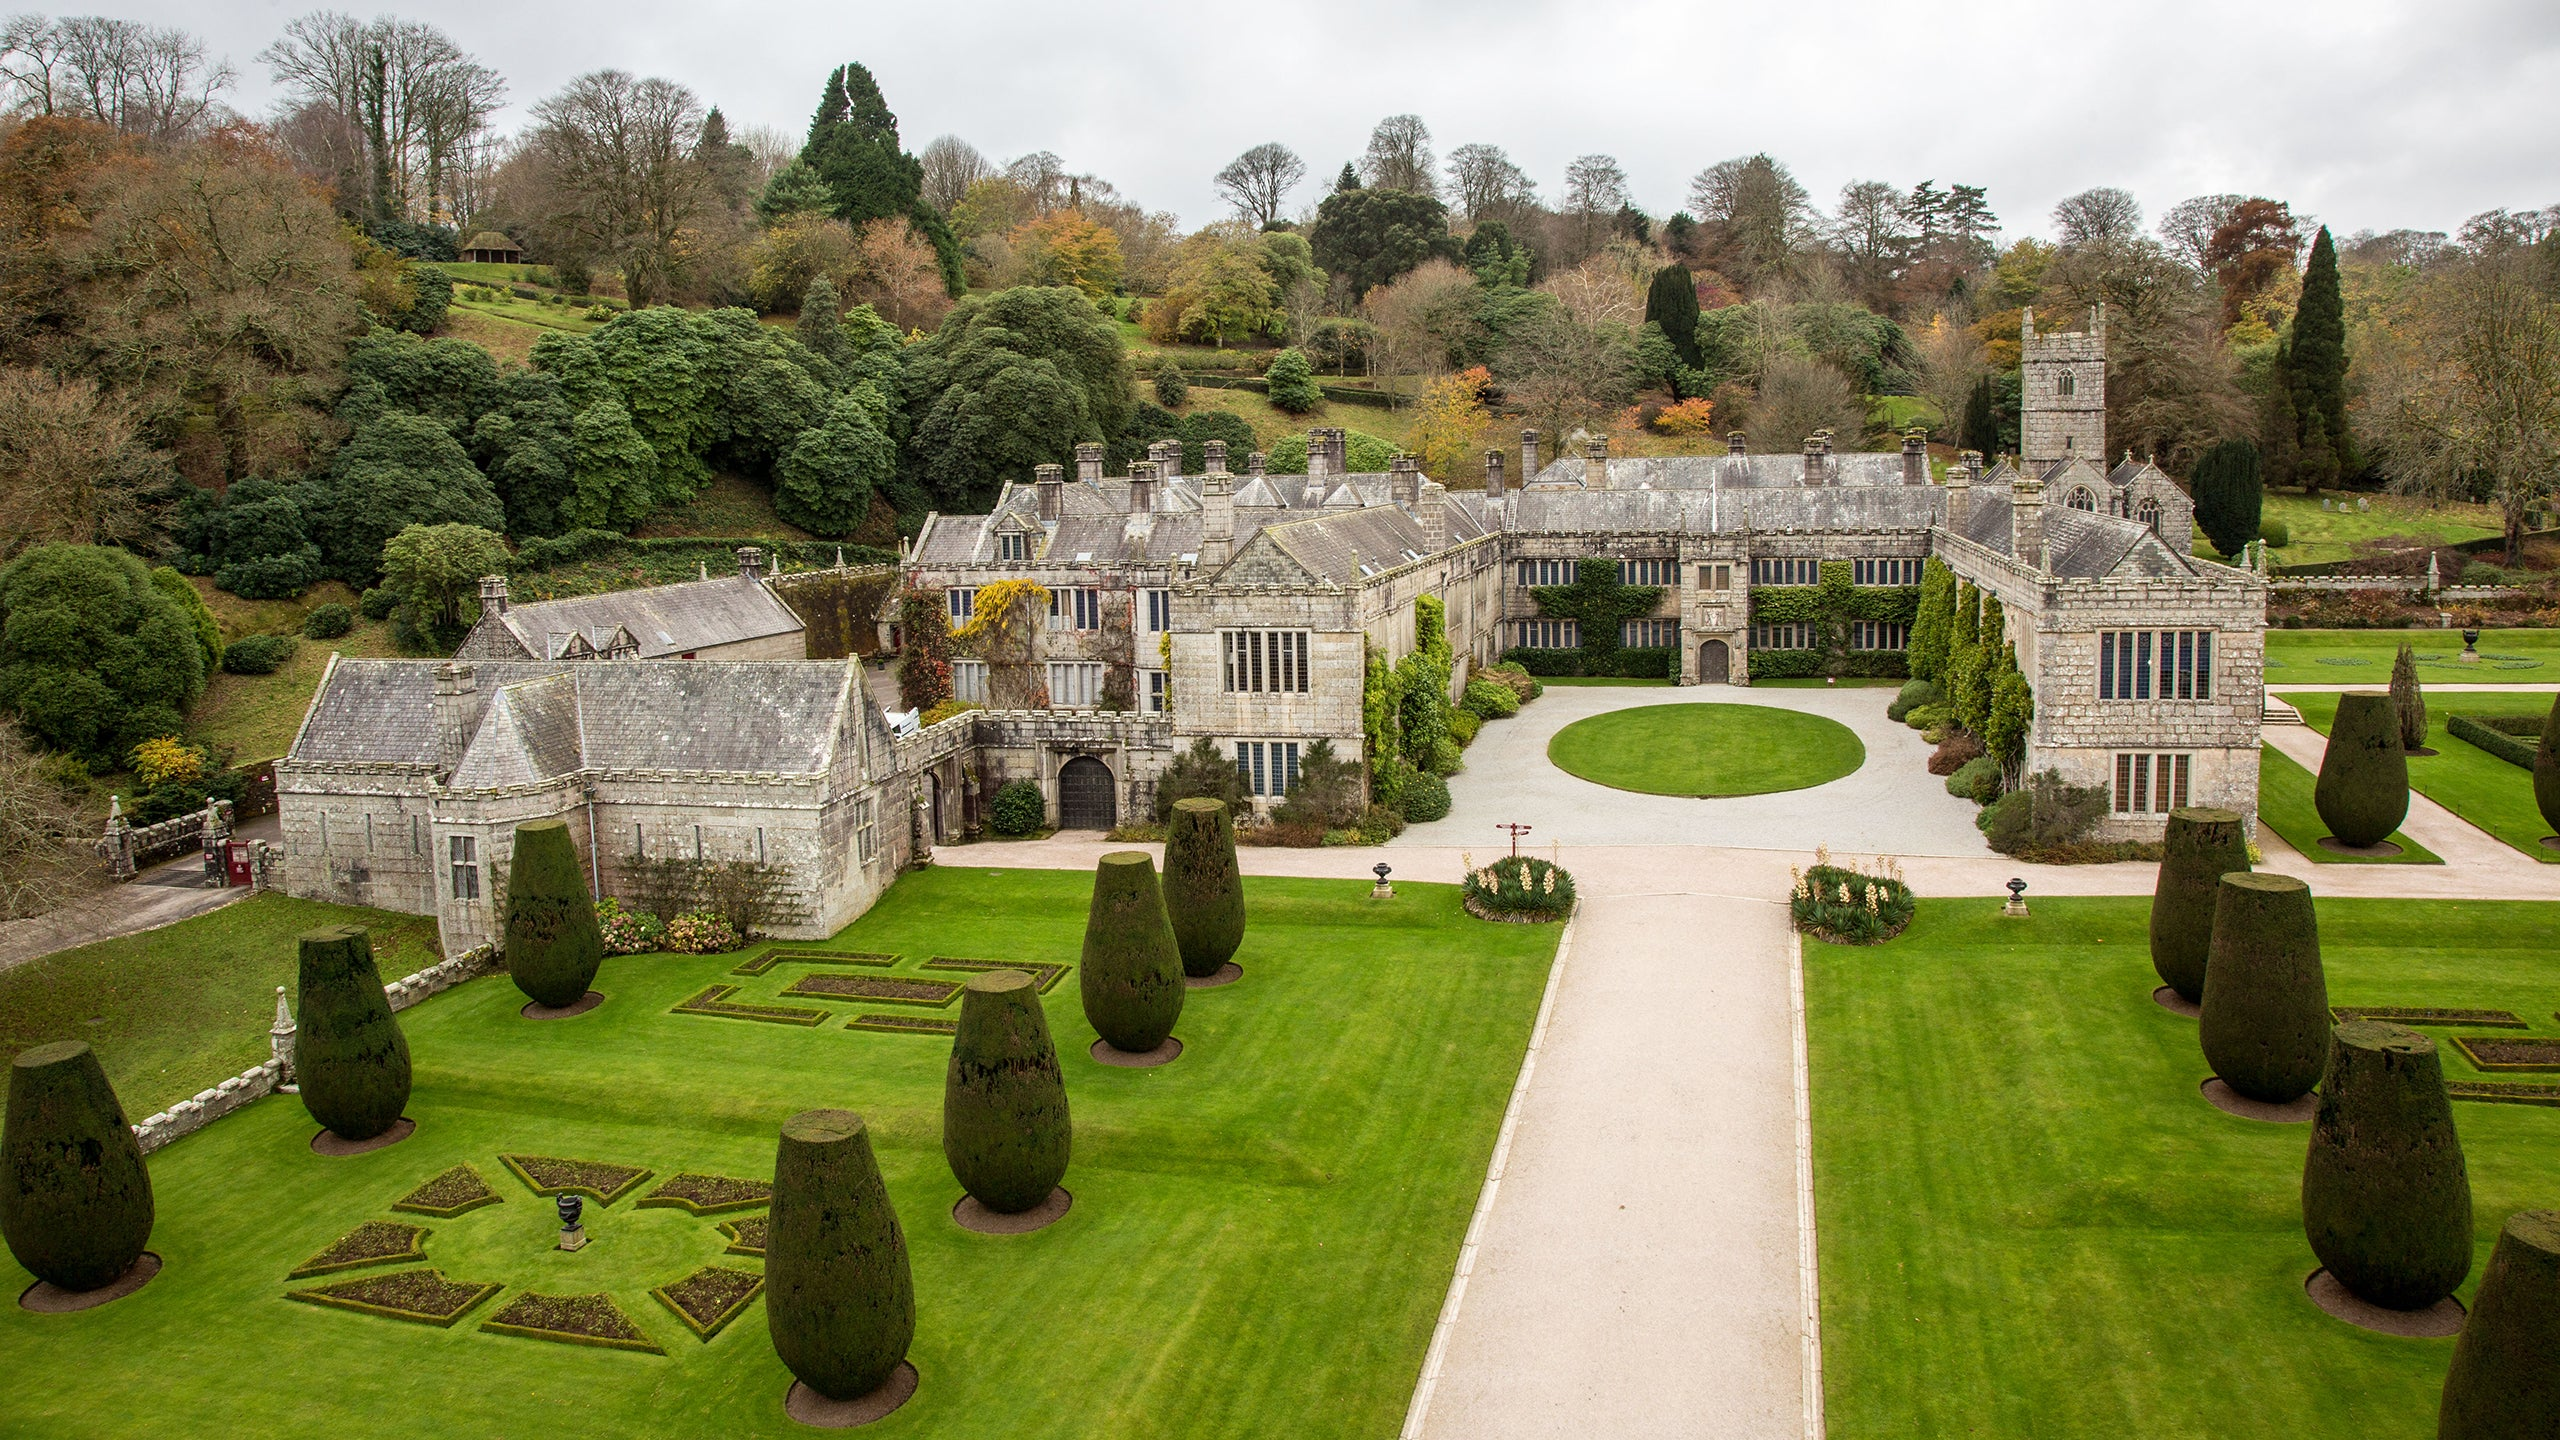 View of the house and garden at Lanhydrock, Cornwall